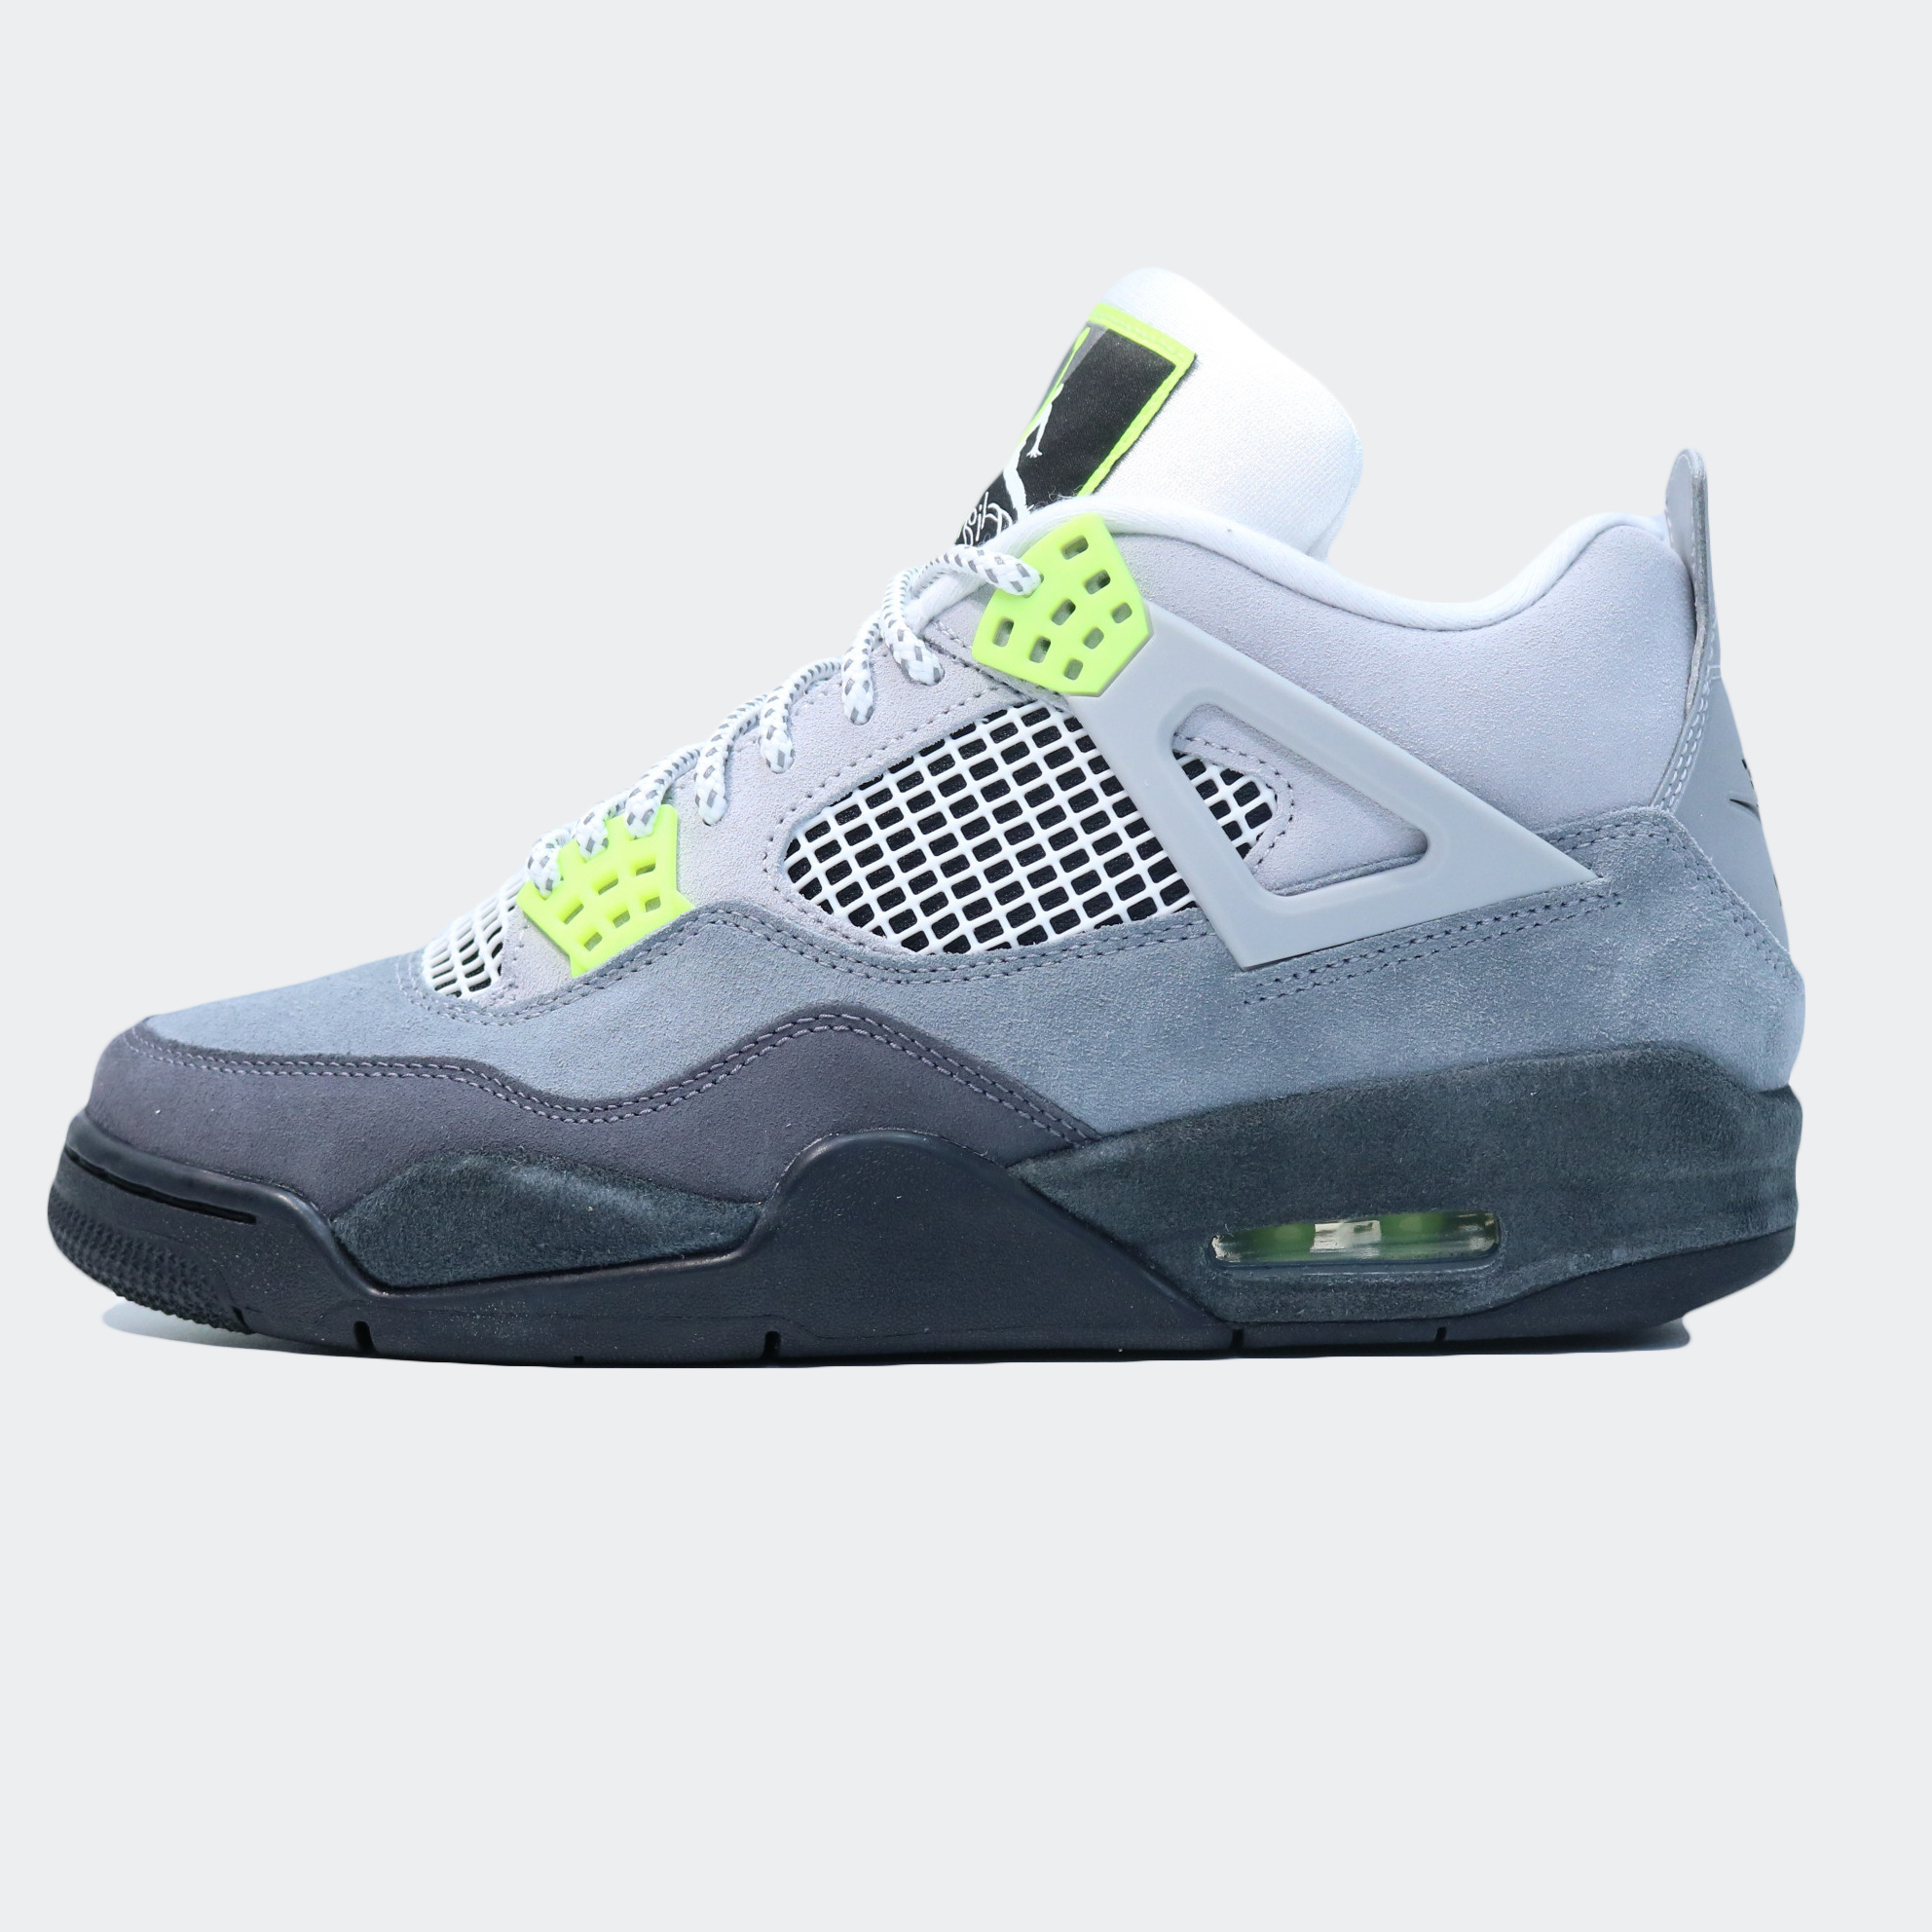 Air Jordan Retro 4 Air Max 95 Neon Og Ct5342 007 Volt Wolf Grey Sam Tabak